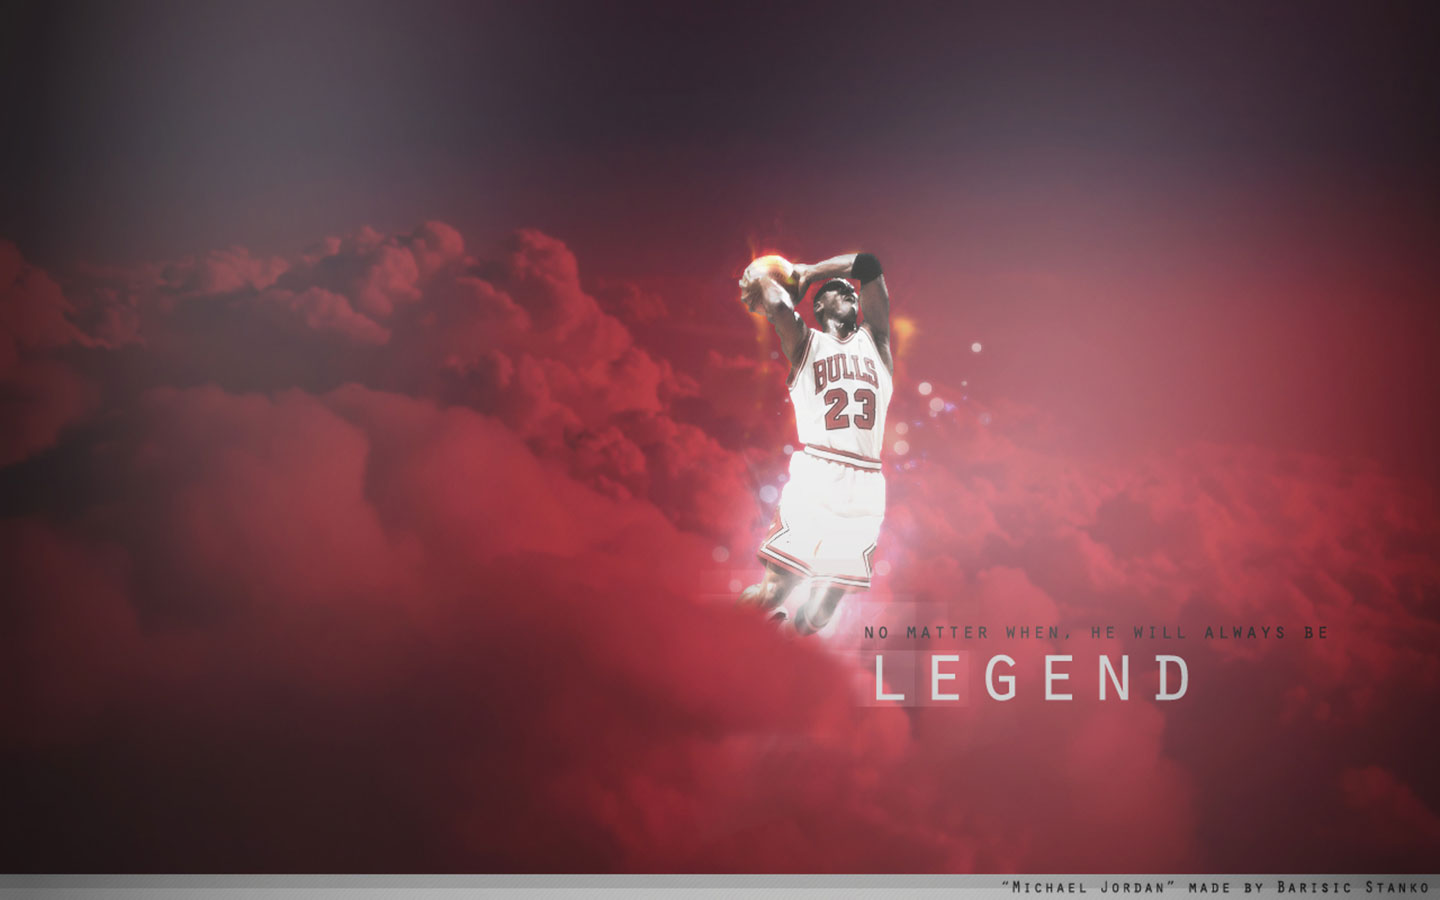 1440x900 - Michael Jordan Wallpapers 22